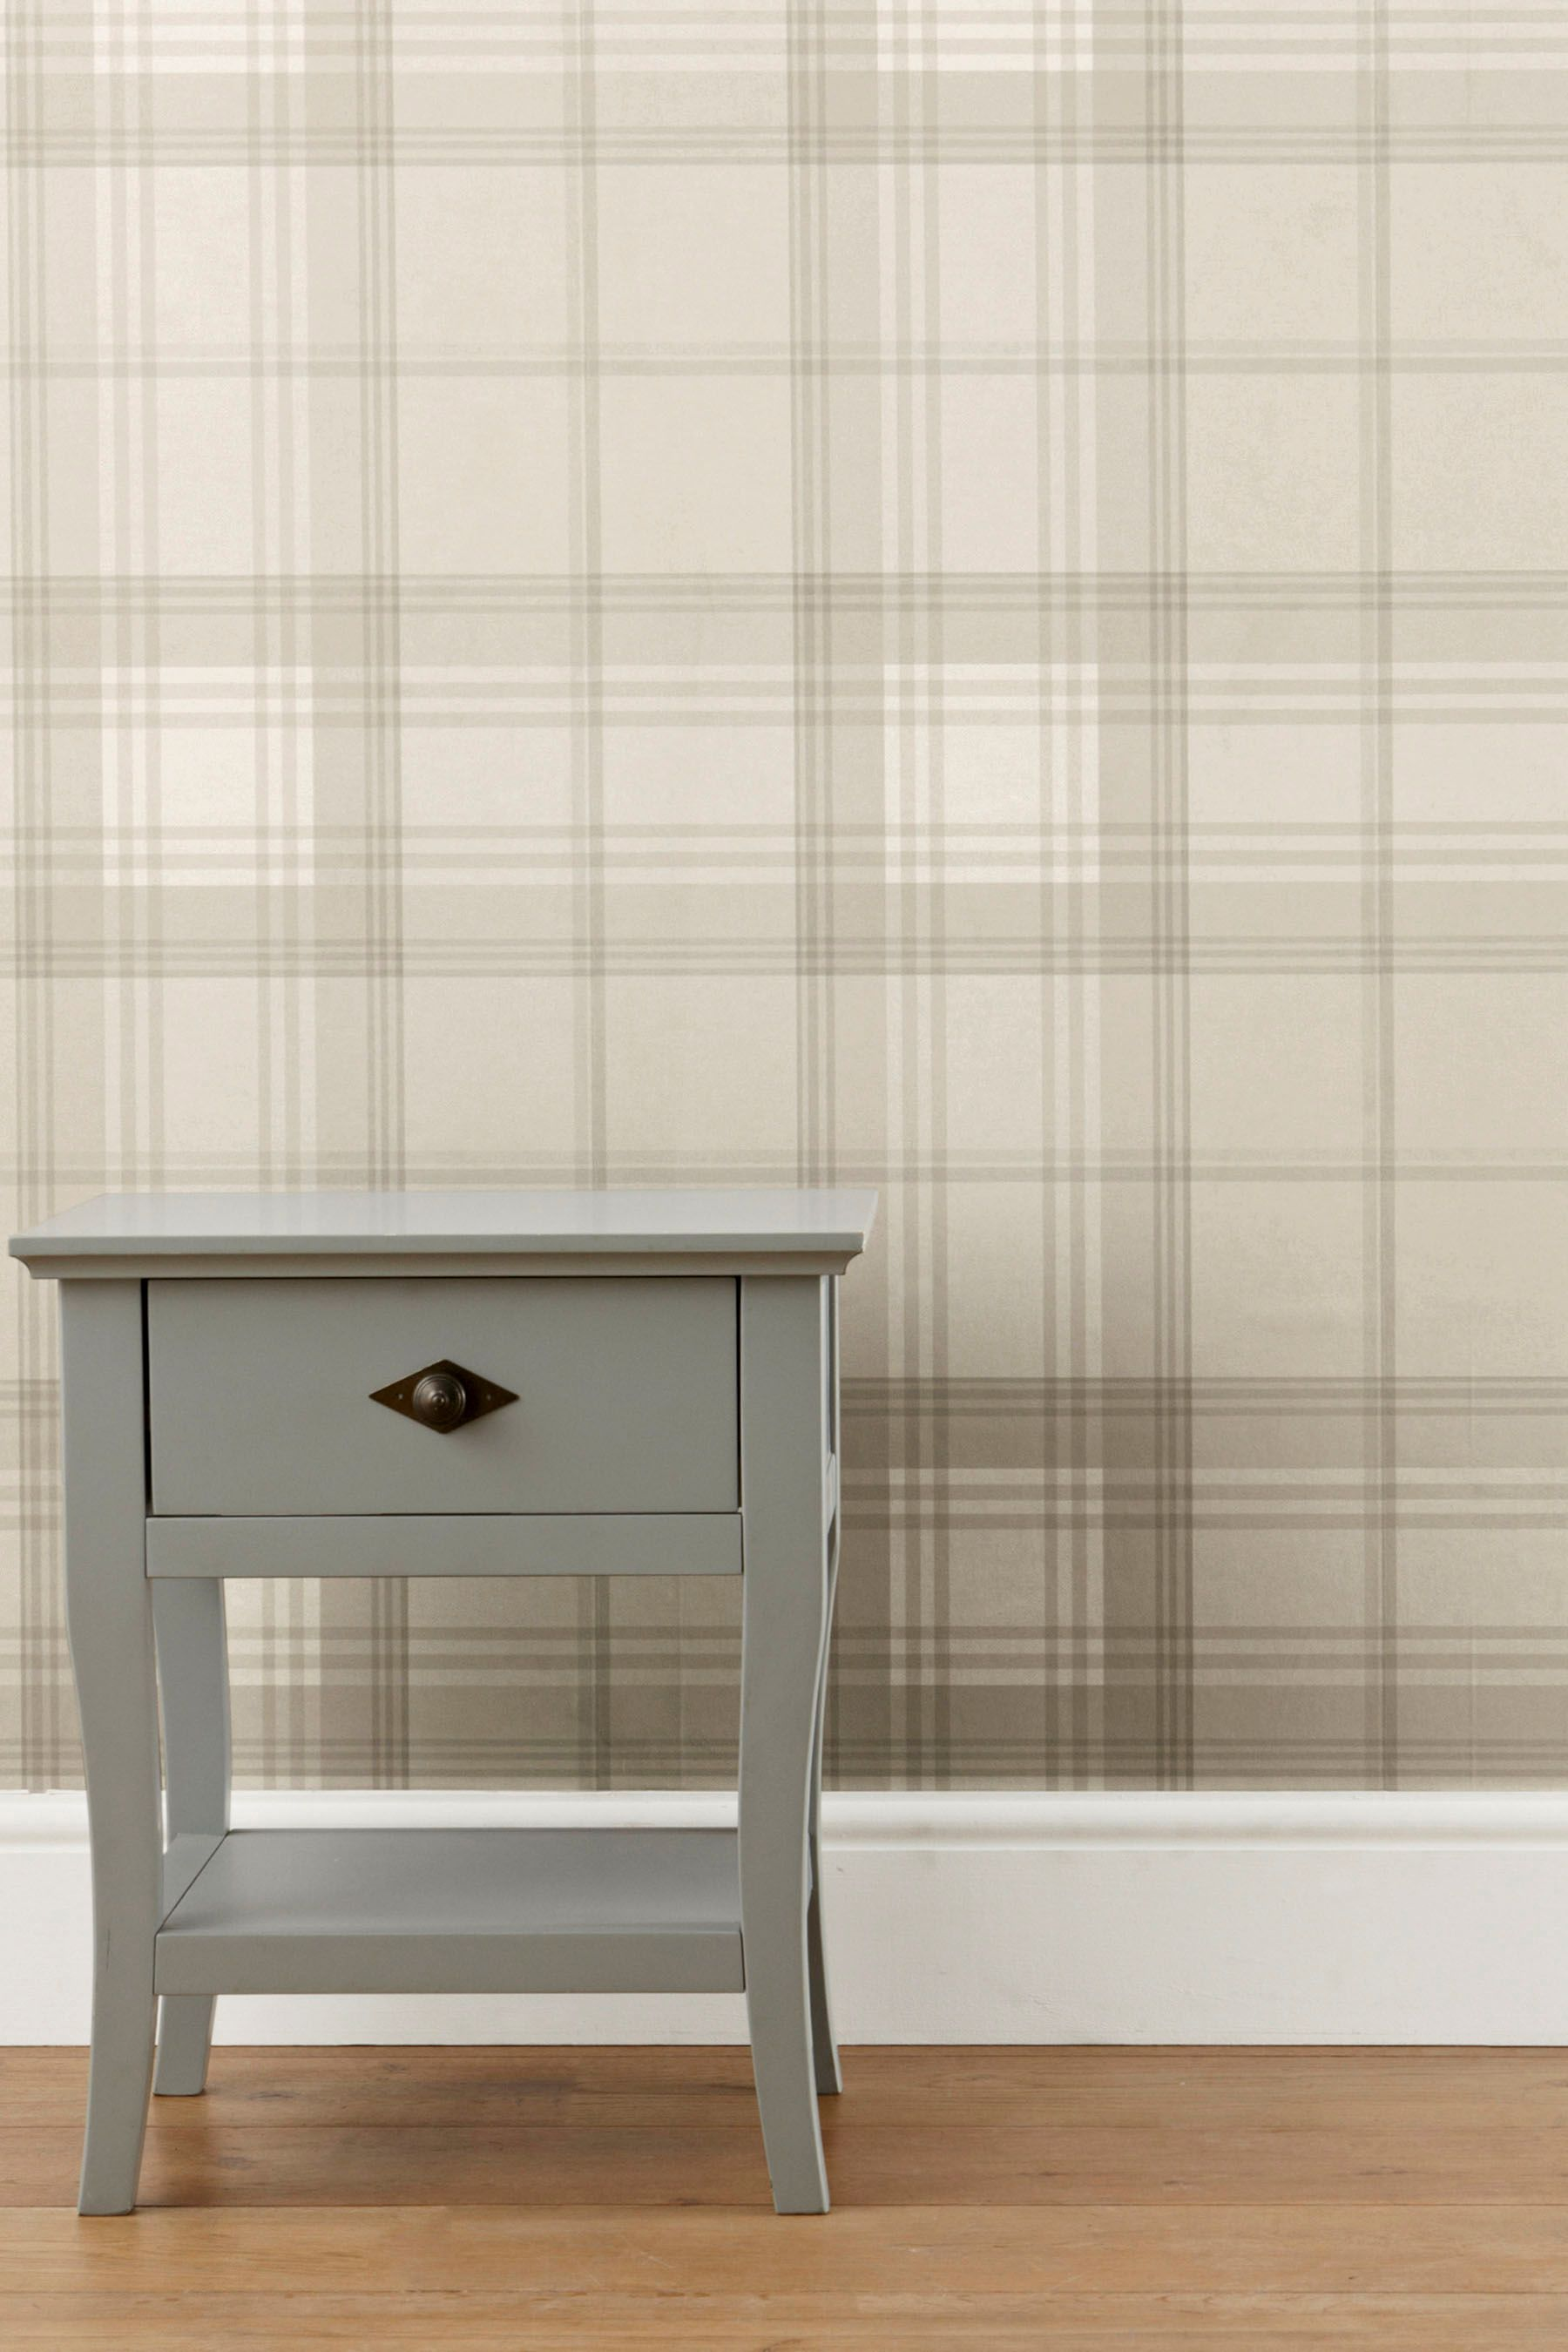 Buy Paste The Wall Natural Check Wallpaper from the Next